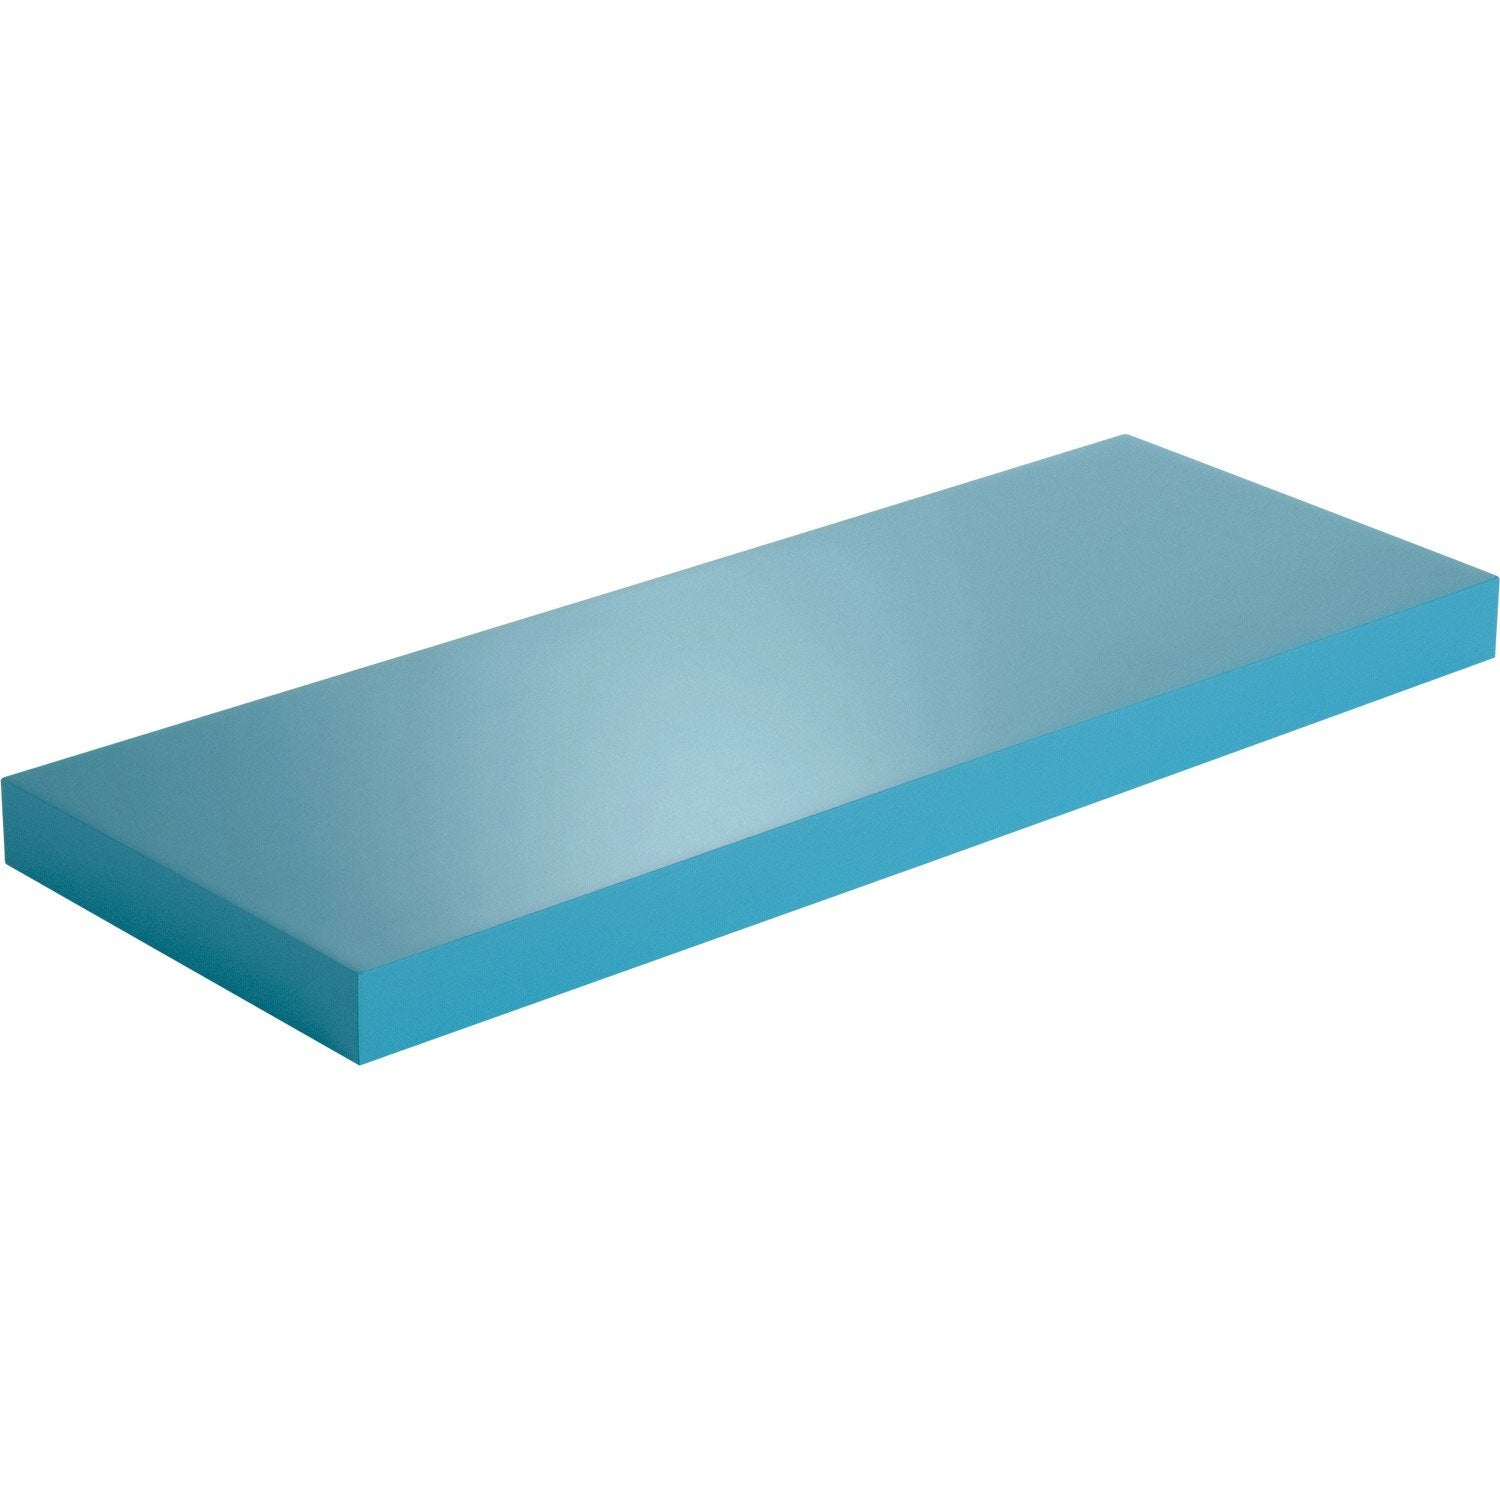 Etag re murale bleu atoll n 4 color spaceo l 60 x p 23 5 cm p 38 mm ler - Etagere murale leroy merlin ...